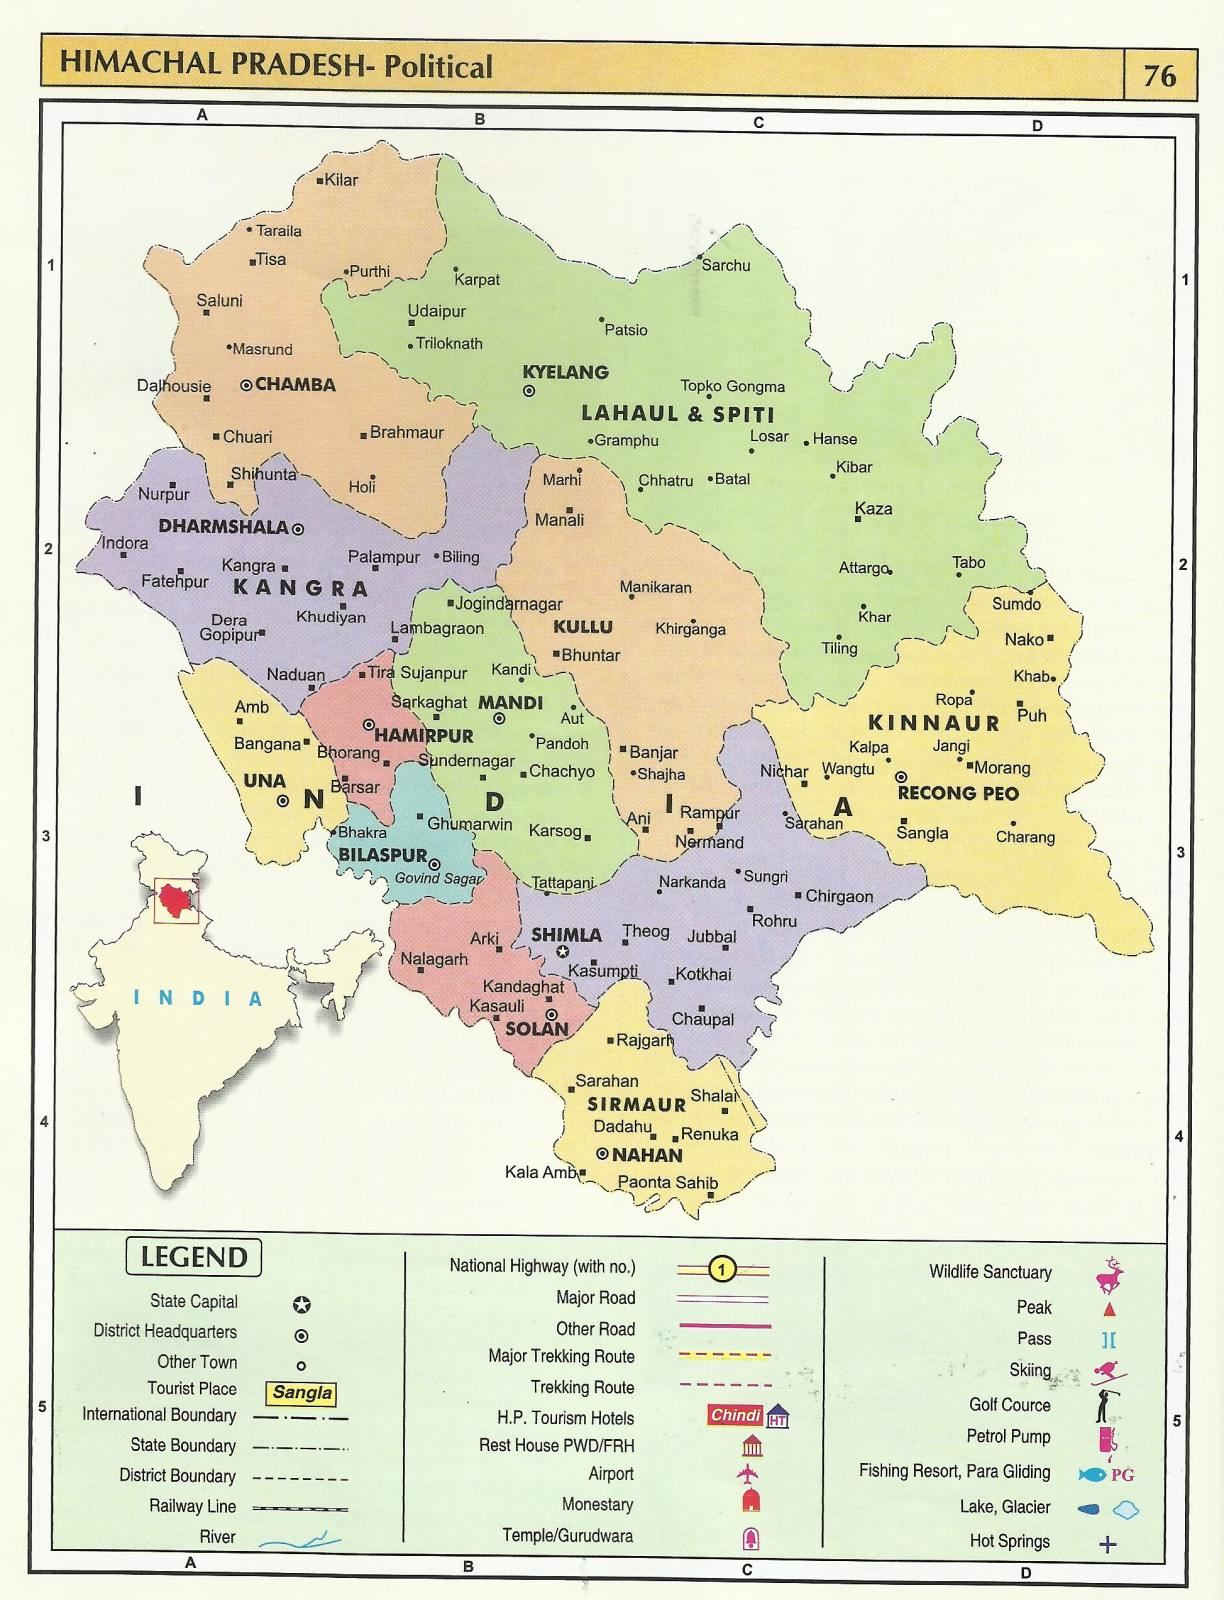 Himachal Pradesh Political Map